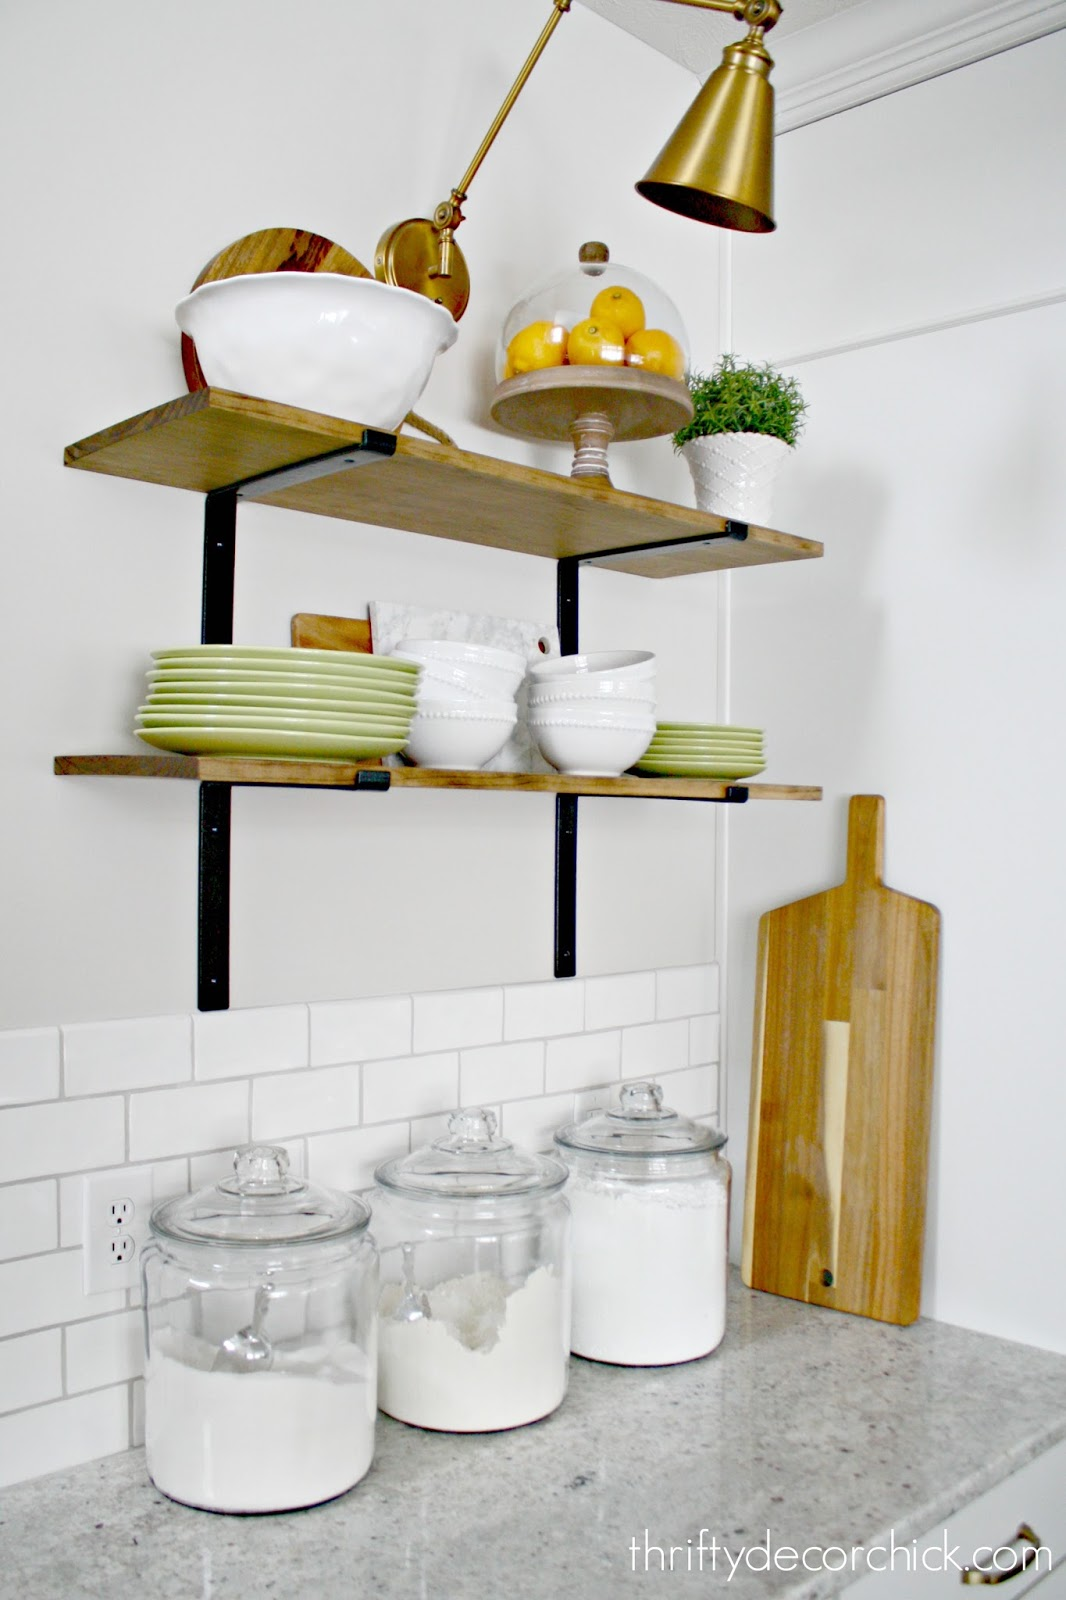 hanging kitchen shelves sideboard in the from thrifty decor chick